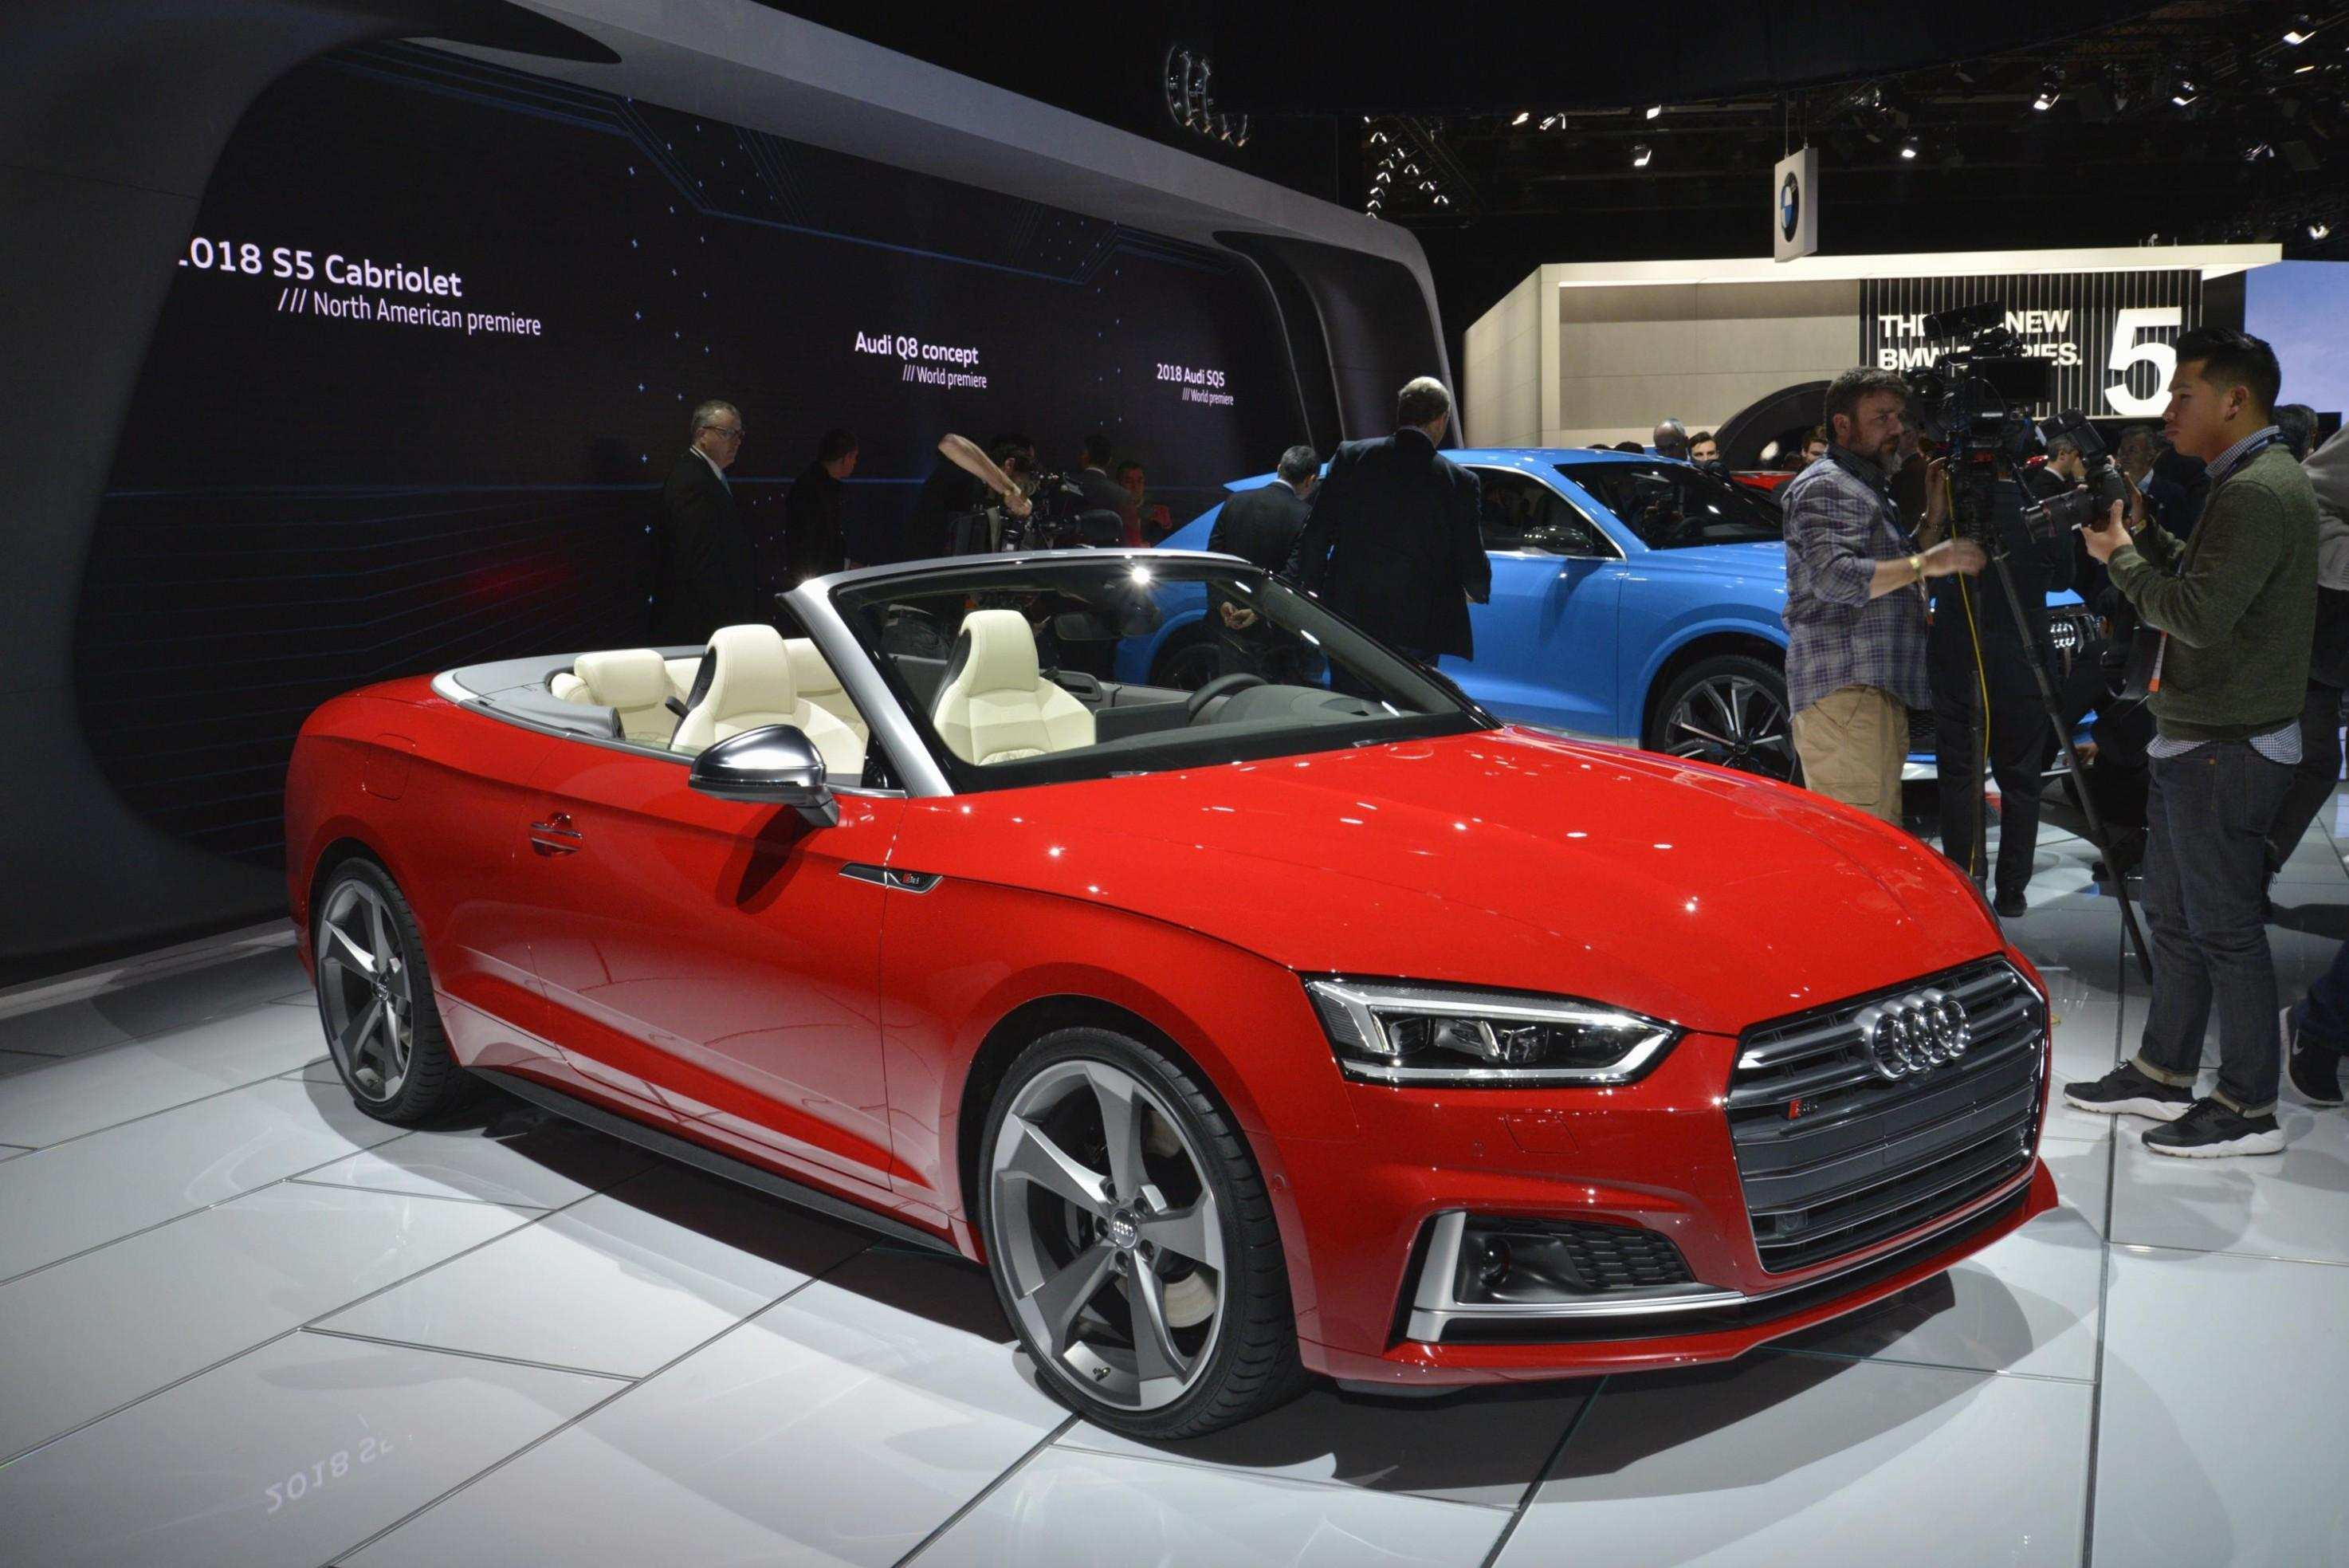 57 All New 2019 Audi S5 Cabriolet Specs